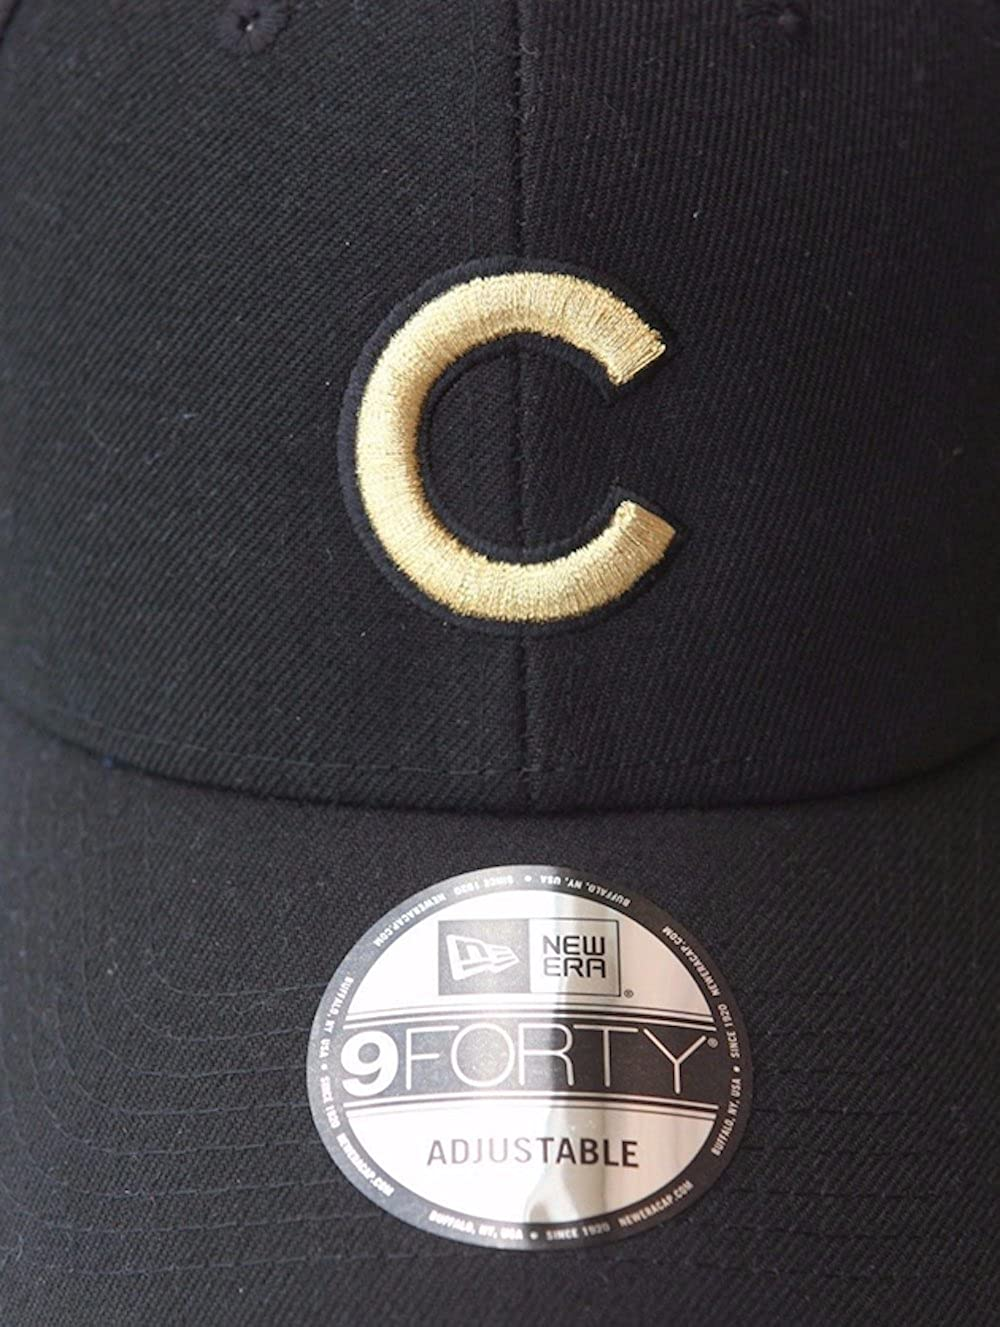 f27675931fa Amazon.com  New Era Mens Chicago Cubs 9FORTY Adjustable 2016 World Series  Baseball Hat Black  Clothing